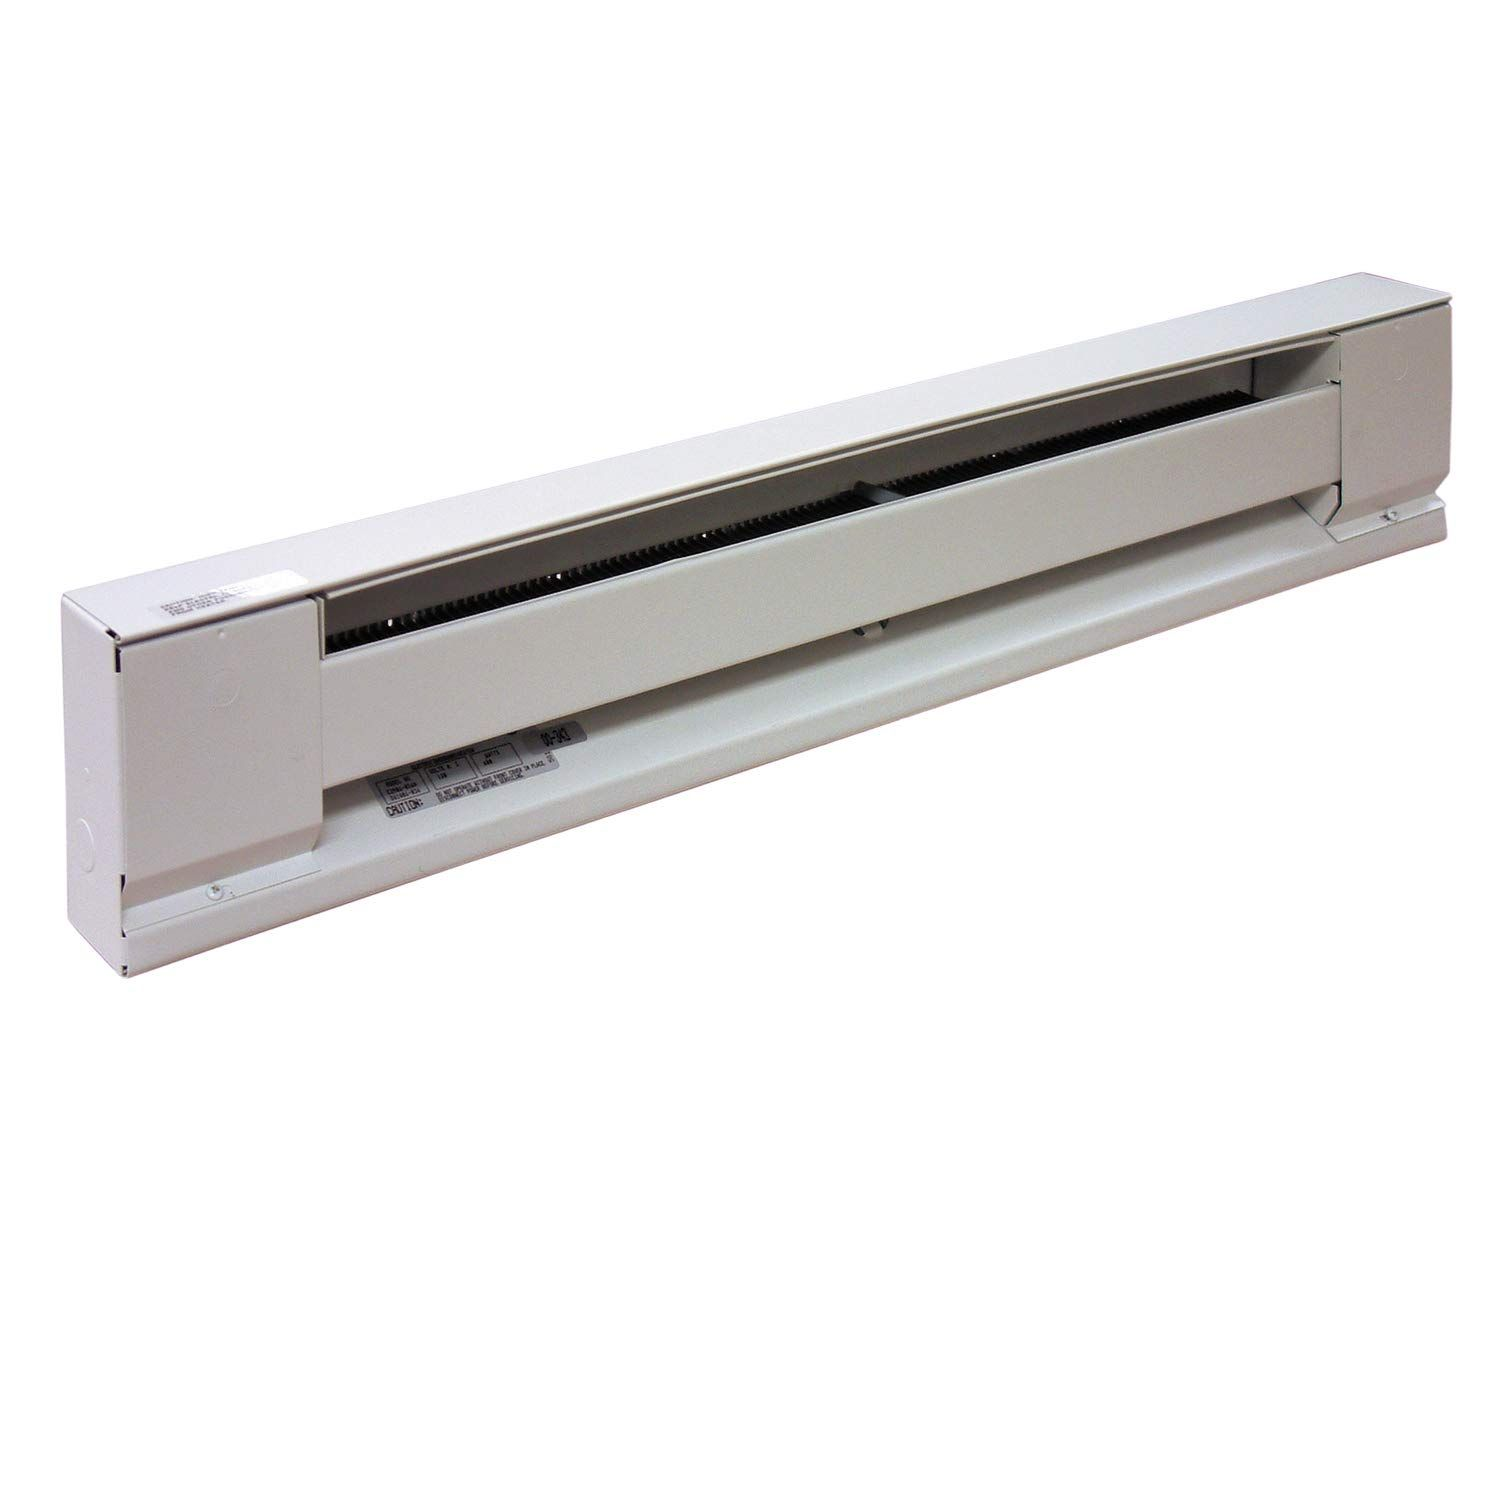 Tpi Corporation E2903 024sw Electric Baseboard Heater Stainless Steel Element 120 Volt 375 Watts 24 Baseboard Heater Electric Baseboard Heaters Baseboards